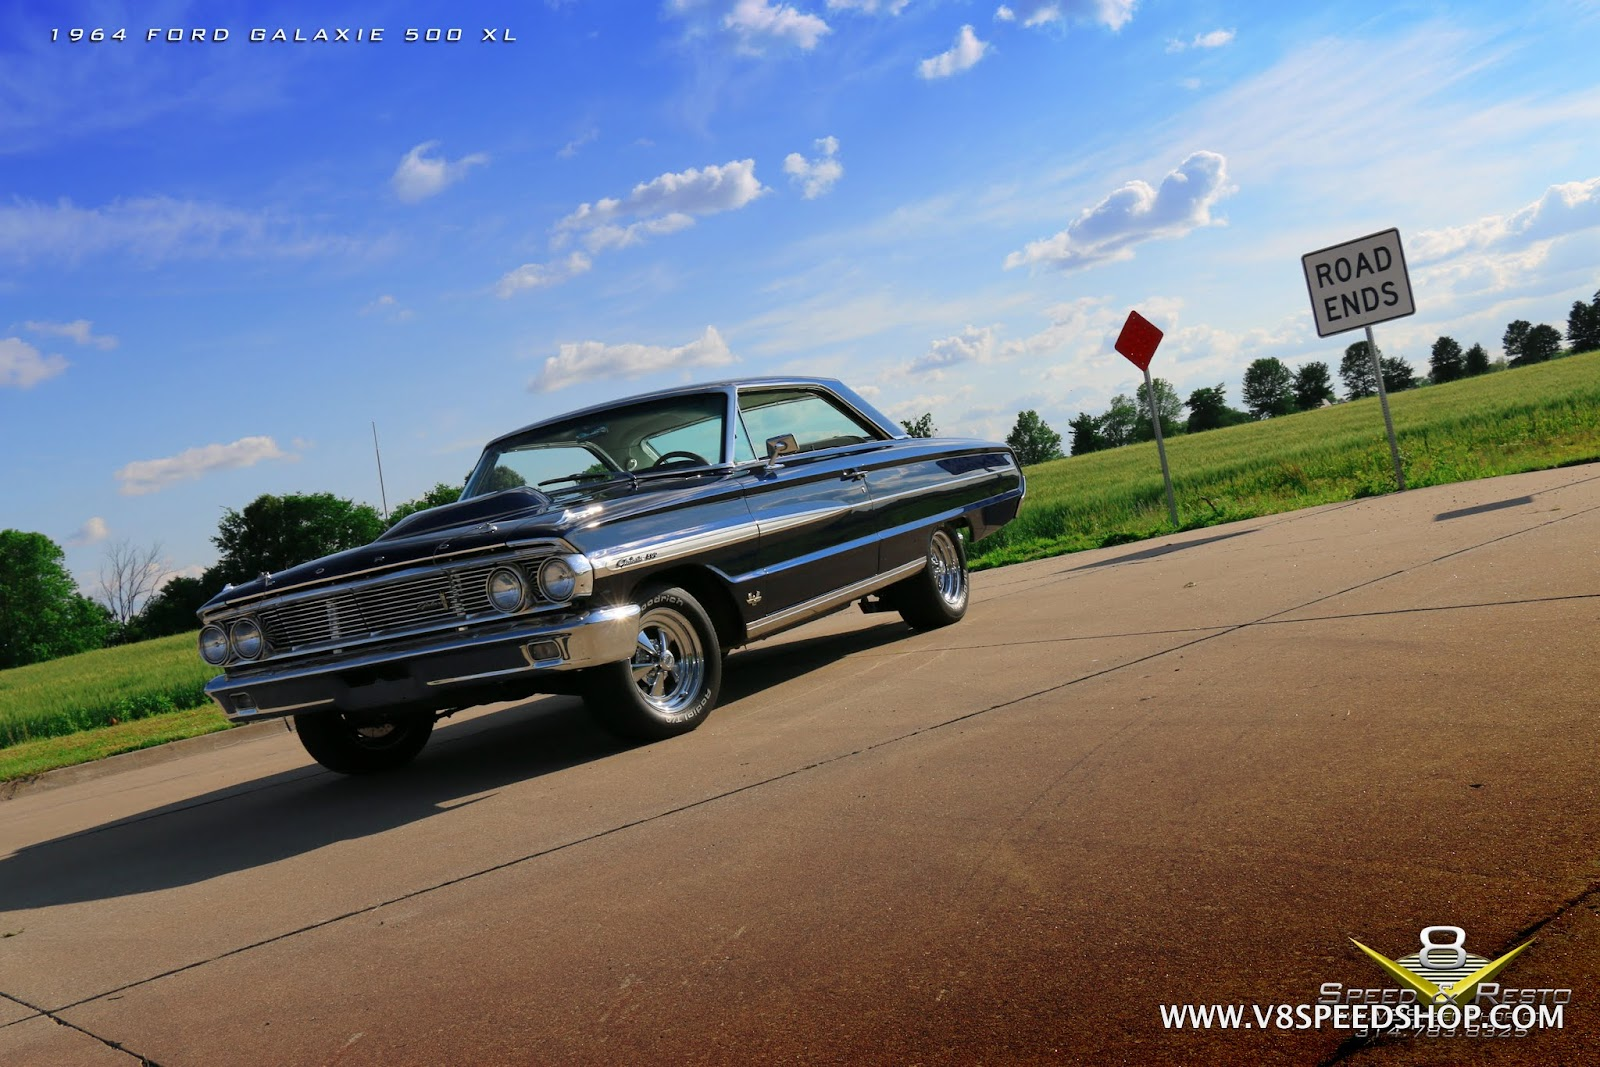 1964 Ford Galaxie 500 XL Repaint